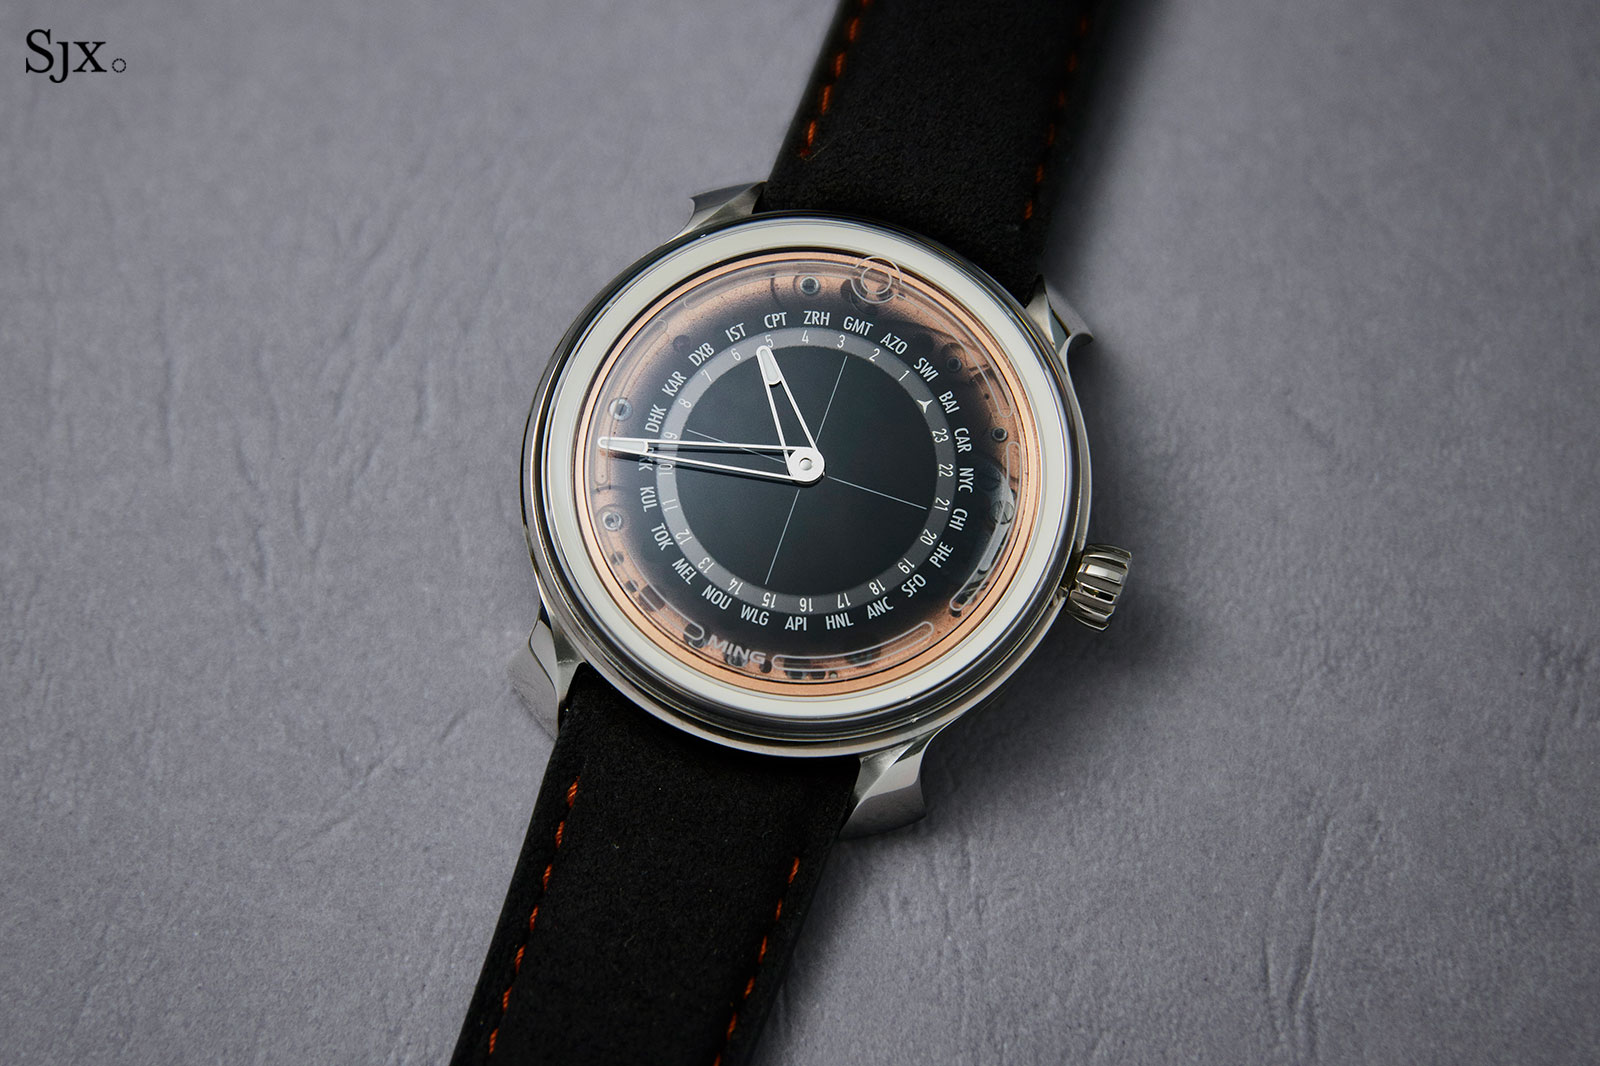 Ming 19.02 worldtimer watch 1